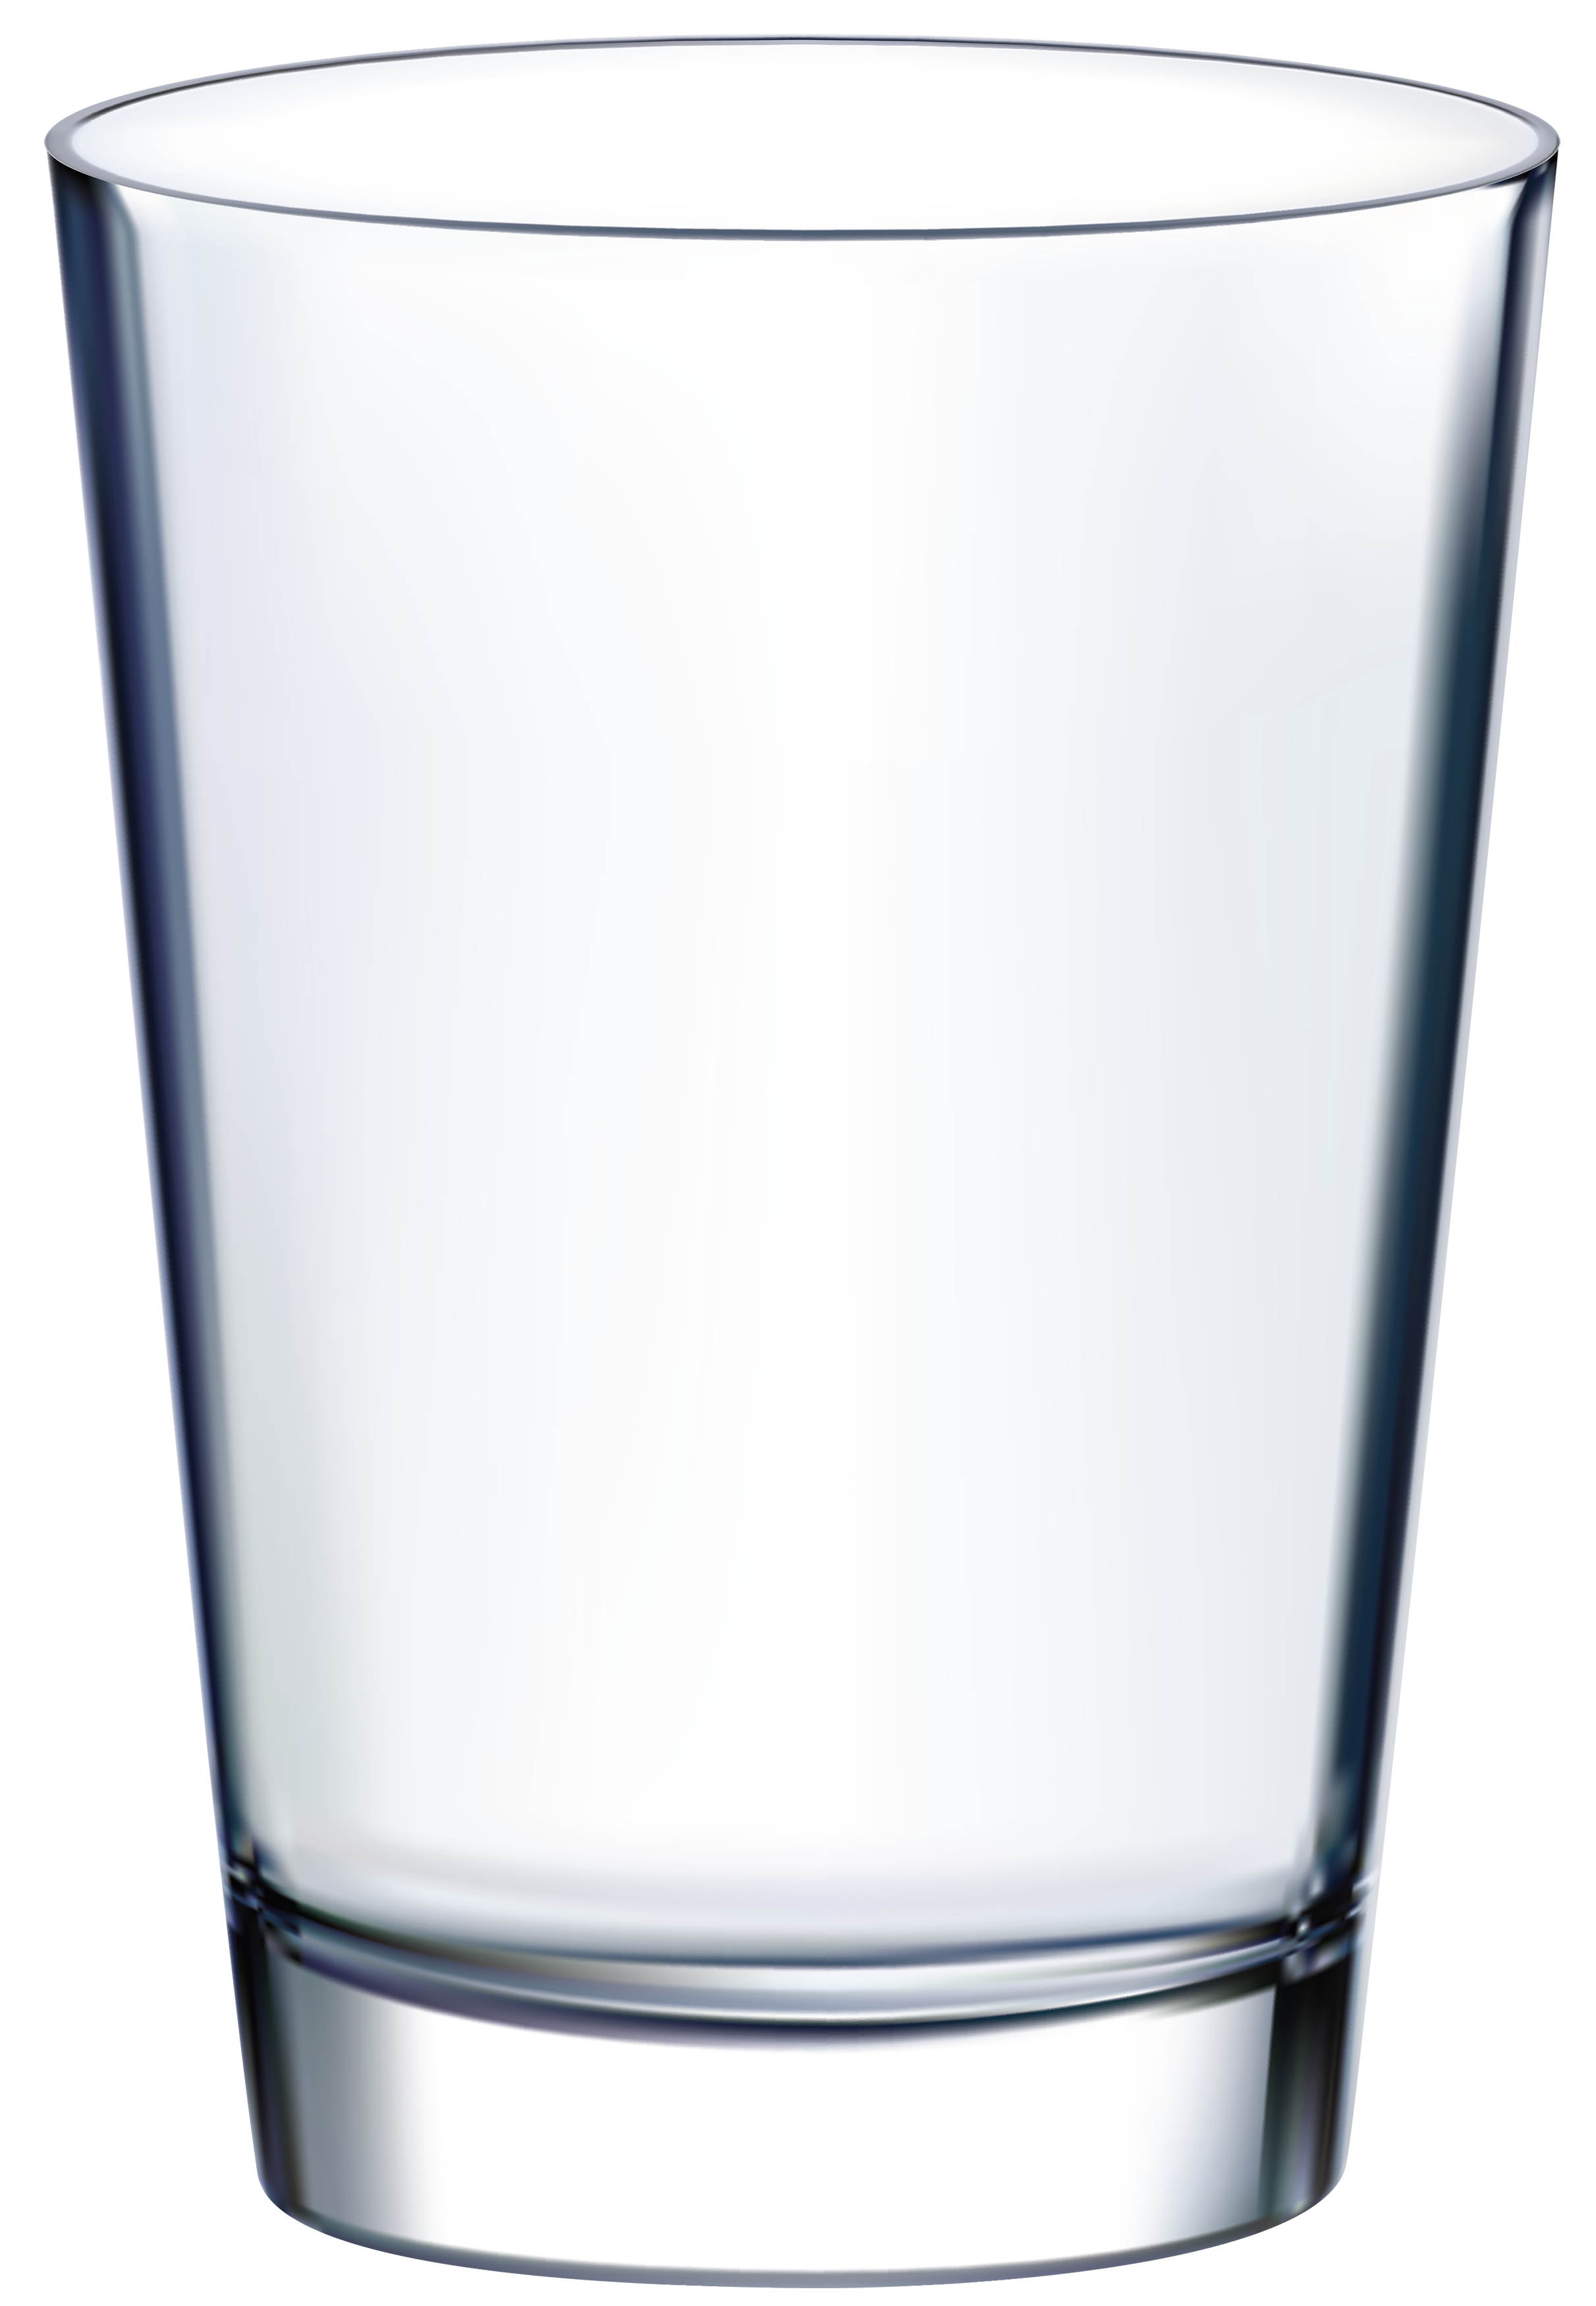 Png image best web. Glass clipart